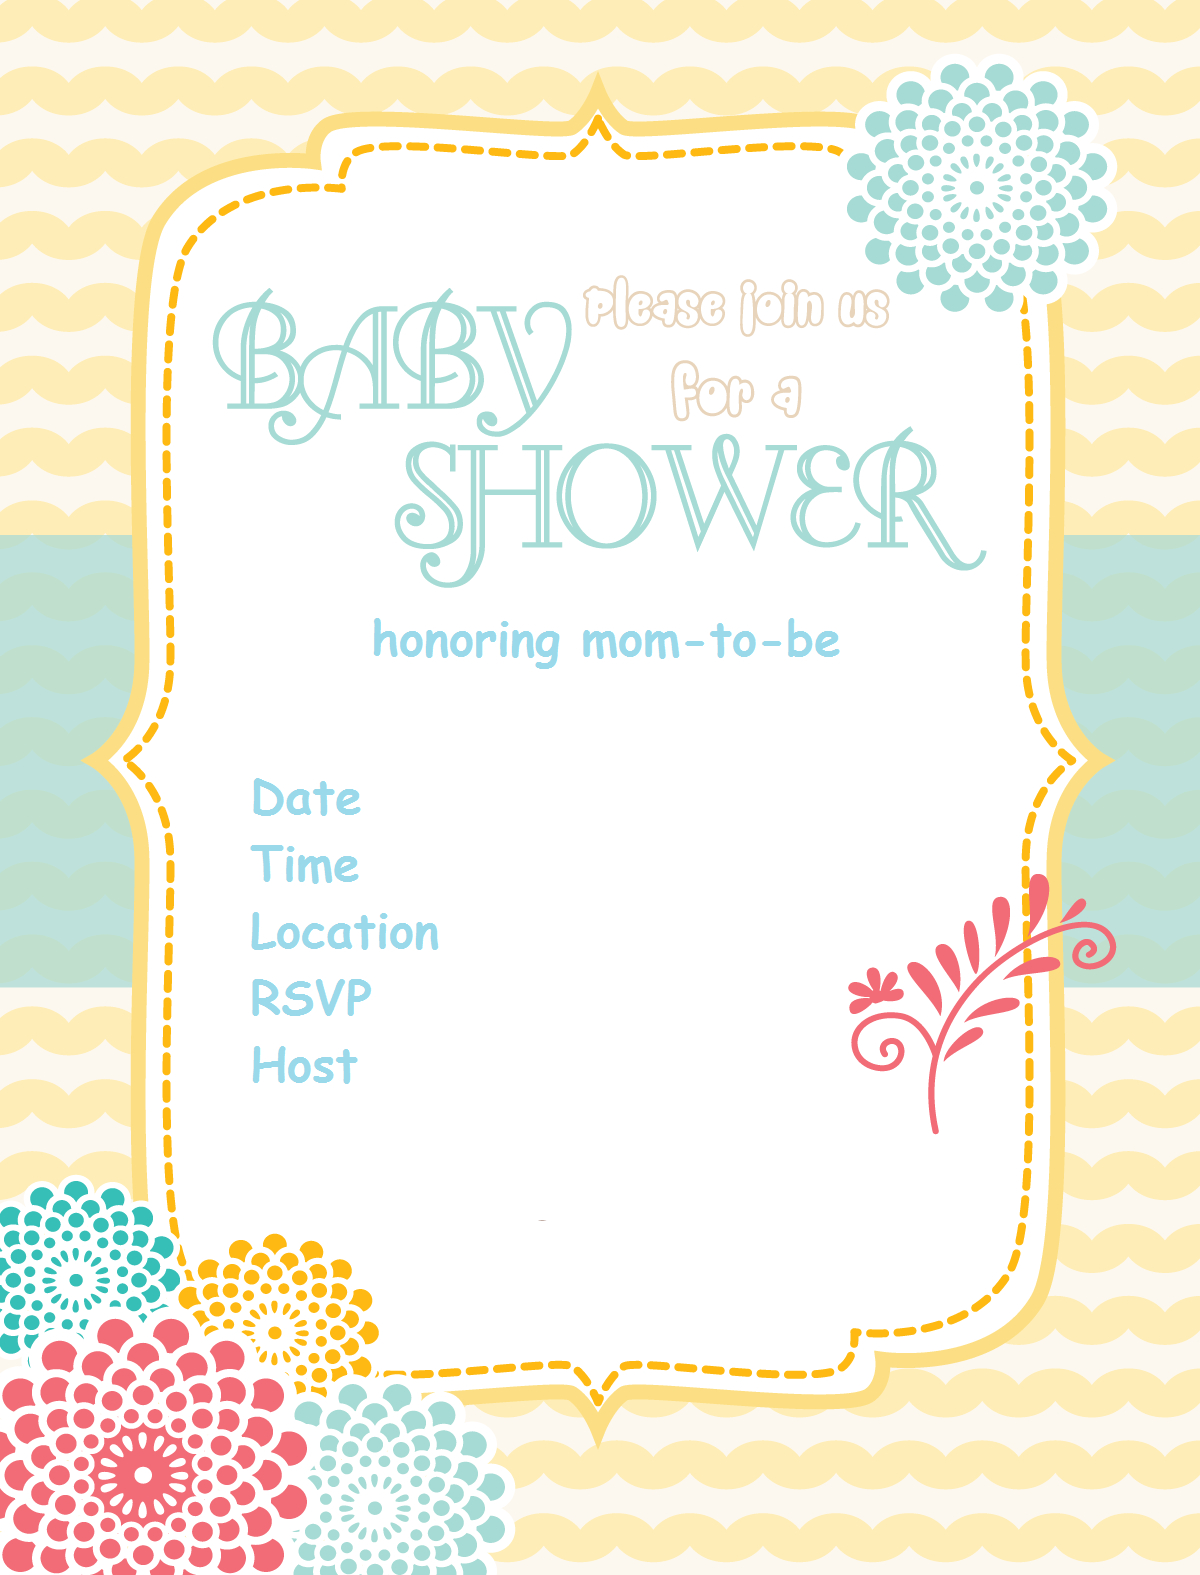 Free Printable Baby Shower Invitations - Baby Shower Ideas - Themes - Baby Shower Templates Free Printable